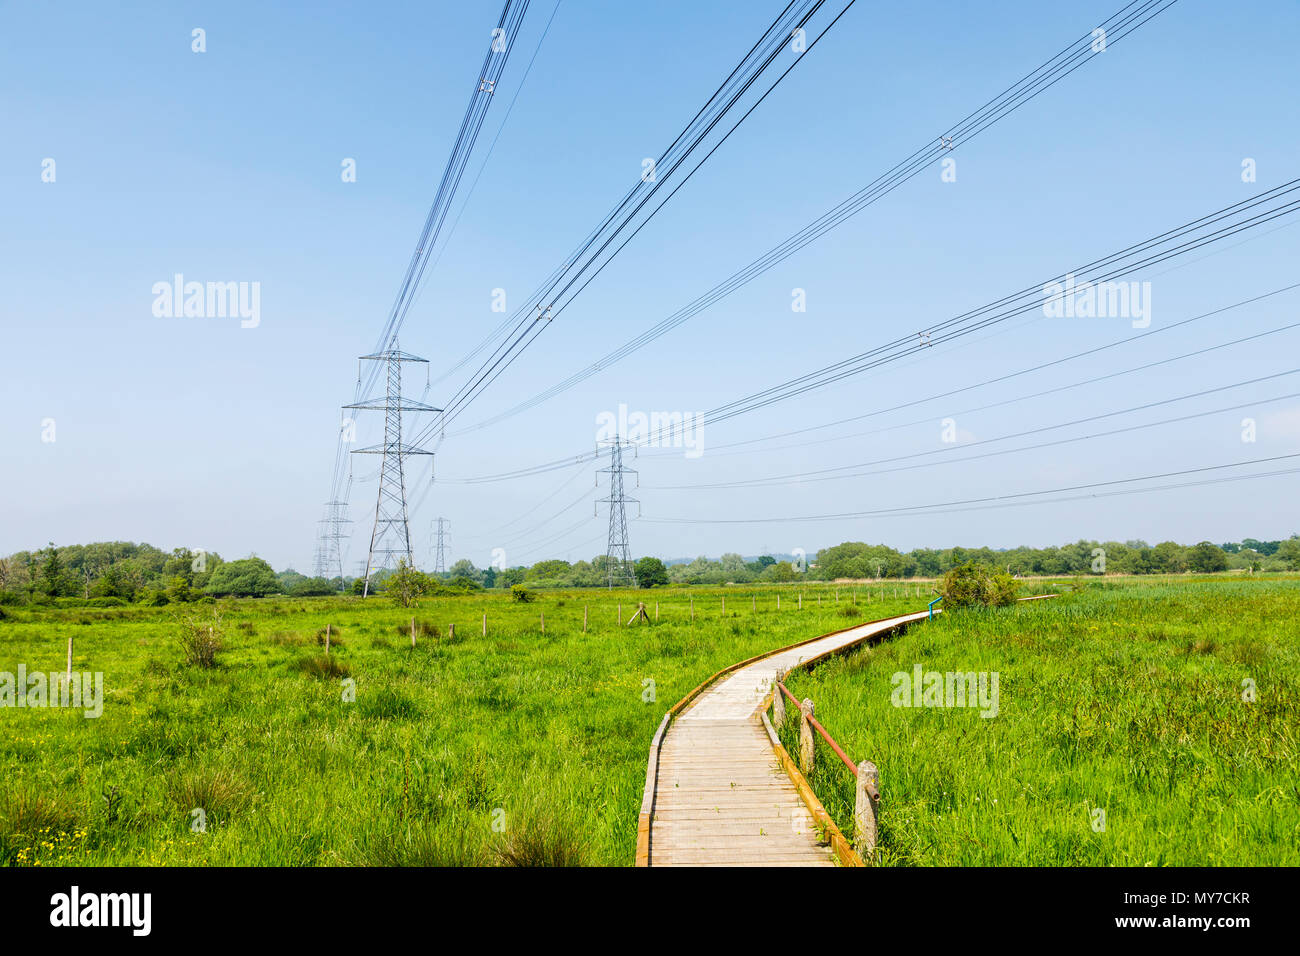 Electricity pylons with overhead cables in the Lower Test Nature Reserve, Totton, River Test estuary, Redbridge, Southampton, Hampshire, UK - Stock Image